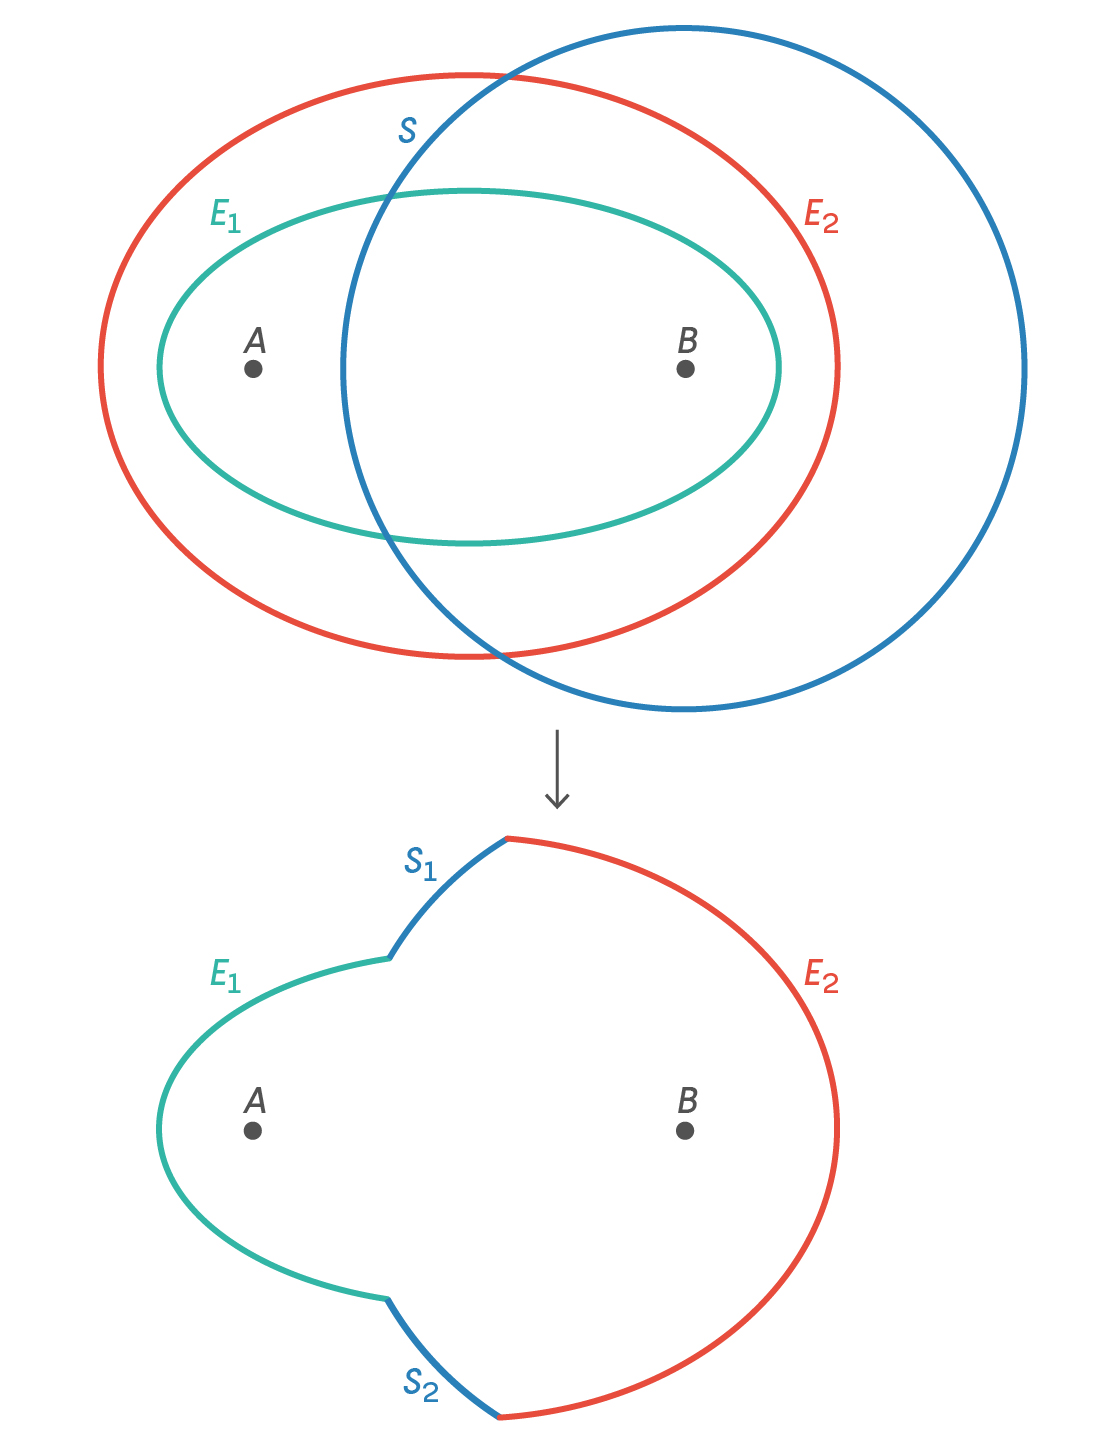 A closed geometric figure made from part of a smaller ellipse, E1, at the left and part of a larger ellipse, E2, at the right, connected by two arcs, S1 and S2. Both ellipses share the same foci, points A at the left and B at the right.